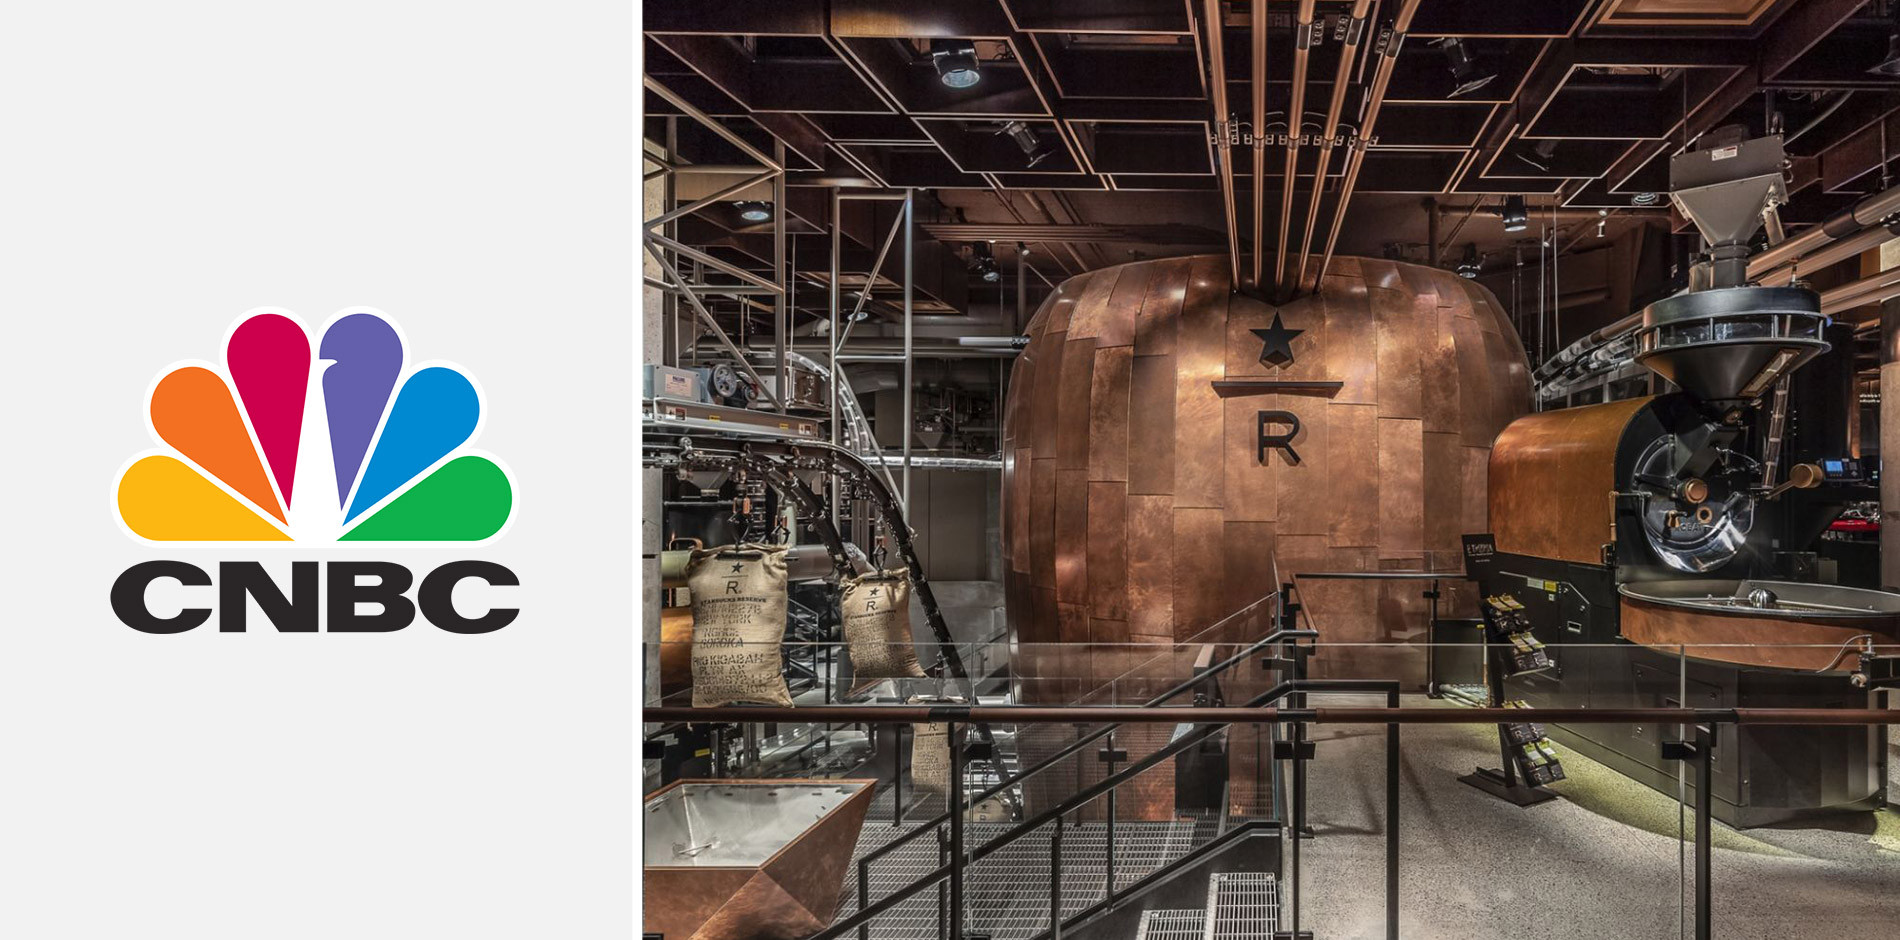 Cnbc Explores The Newly Opened Starbucks Reserve Roastery